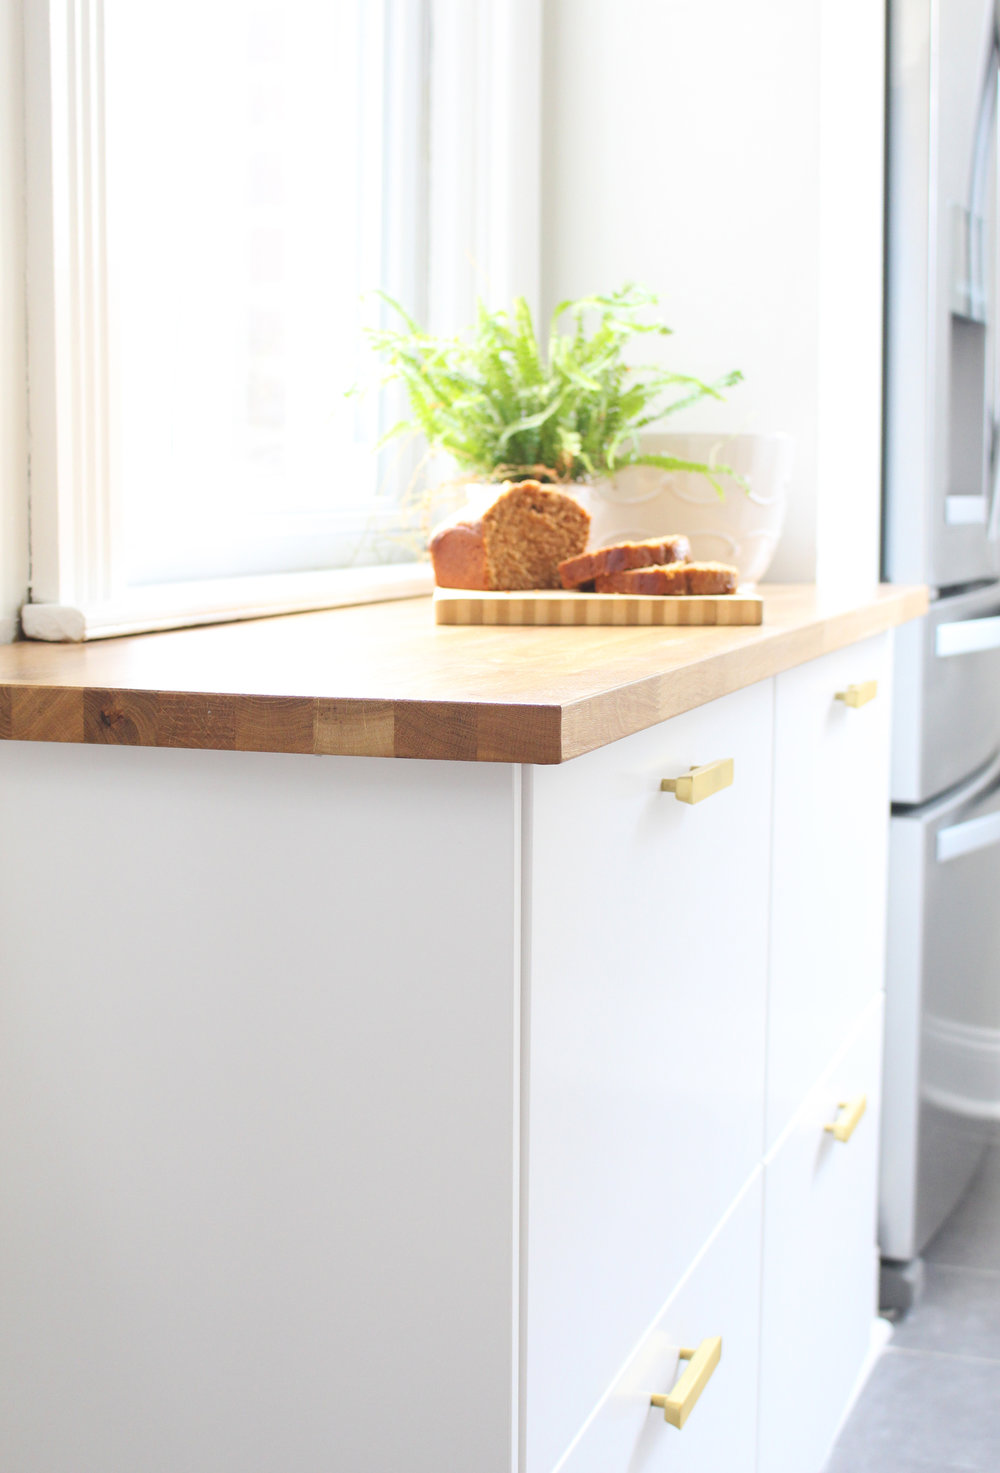 Modern-White-Kitchen-Renovation-Ikea-Sektion-11.jpg